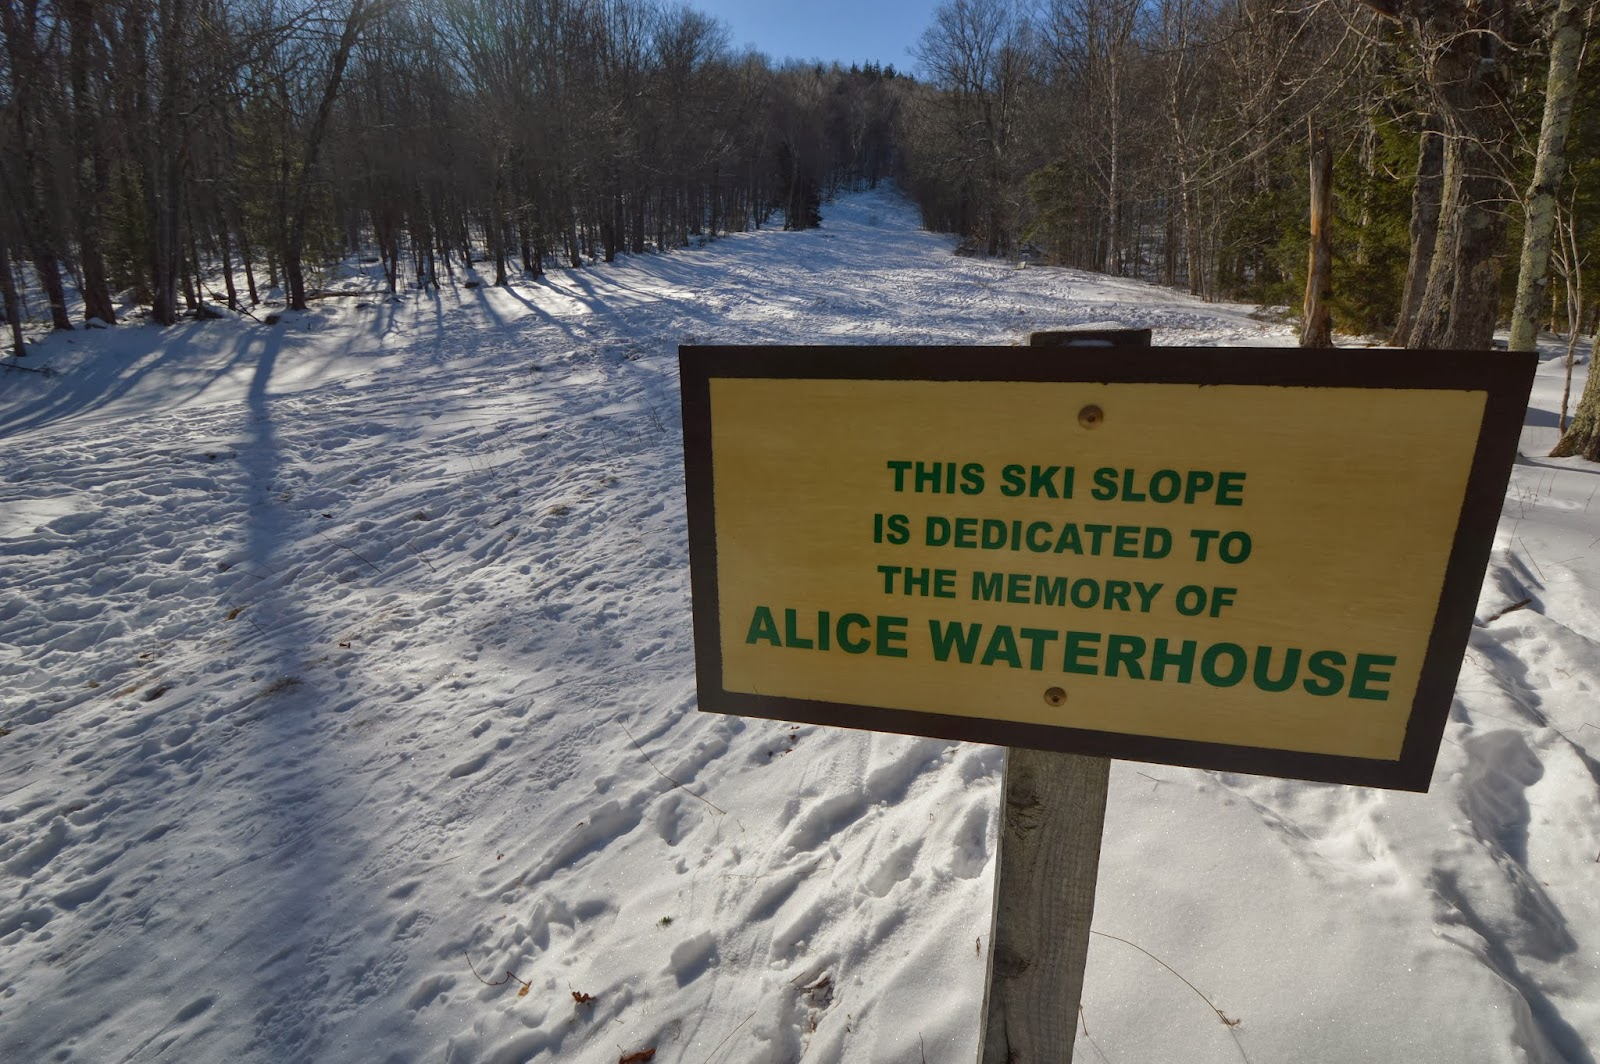 The memorial sign on the ski slope